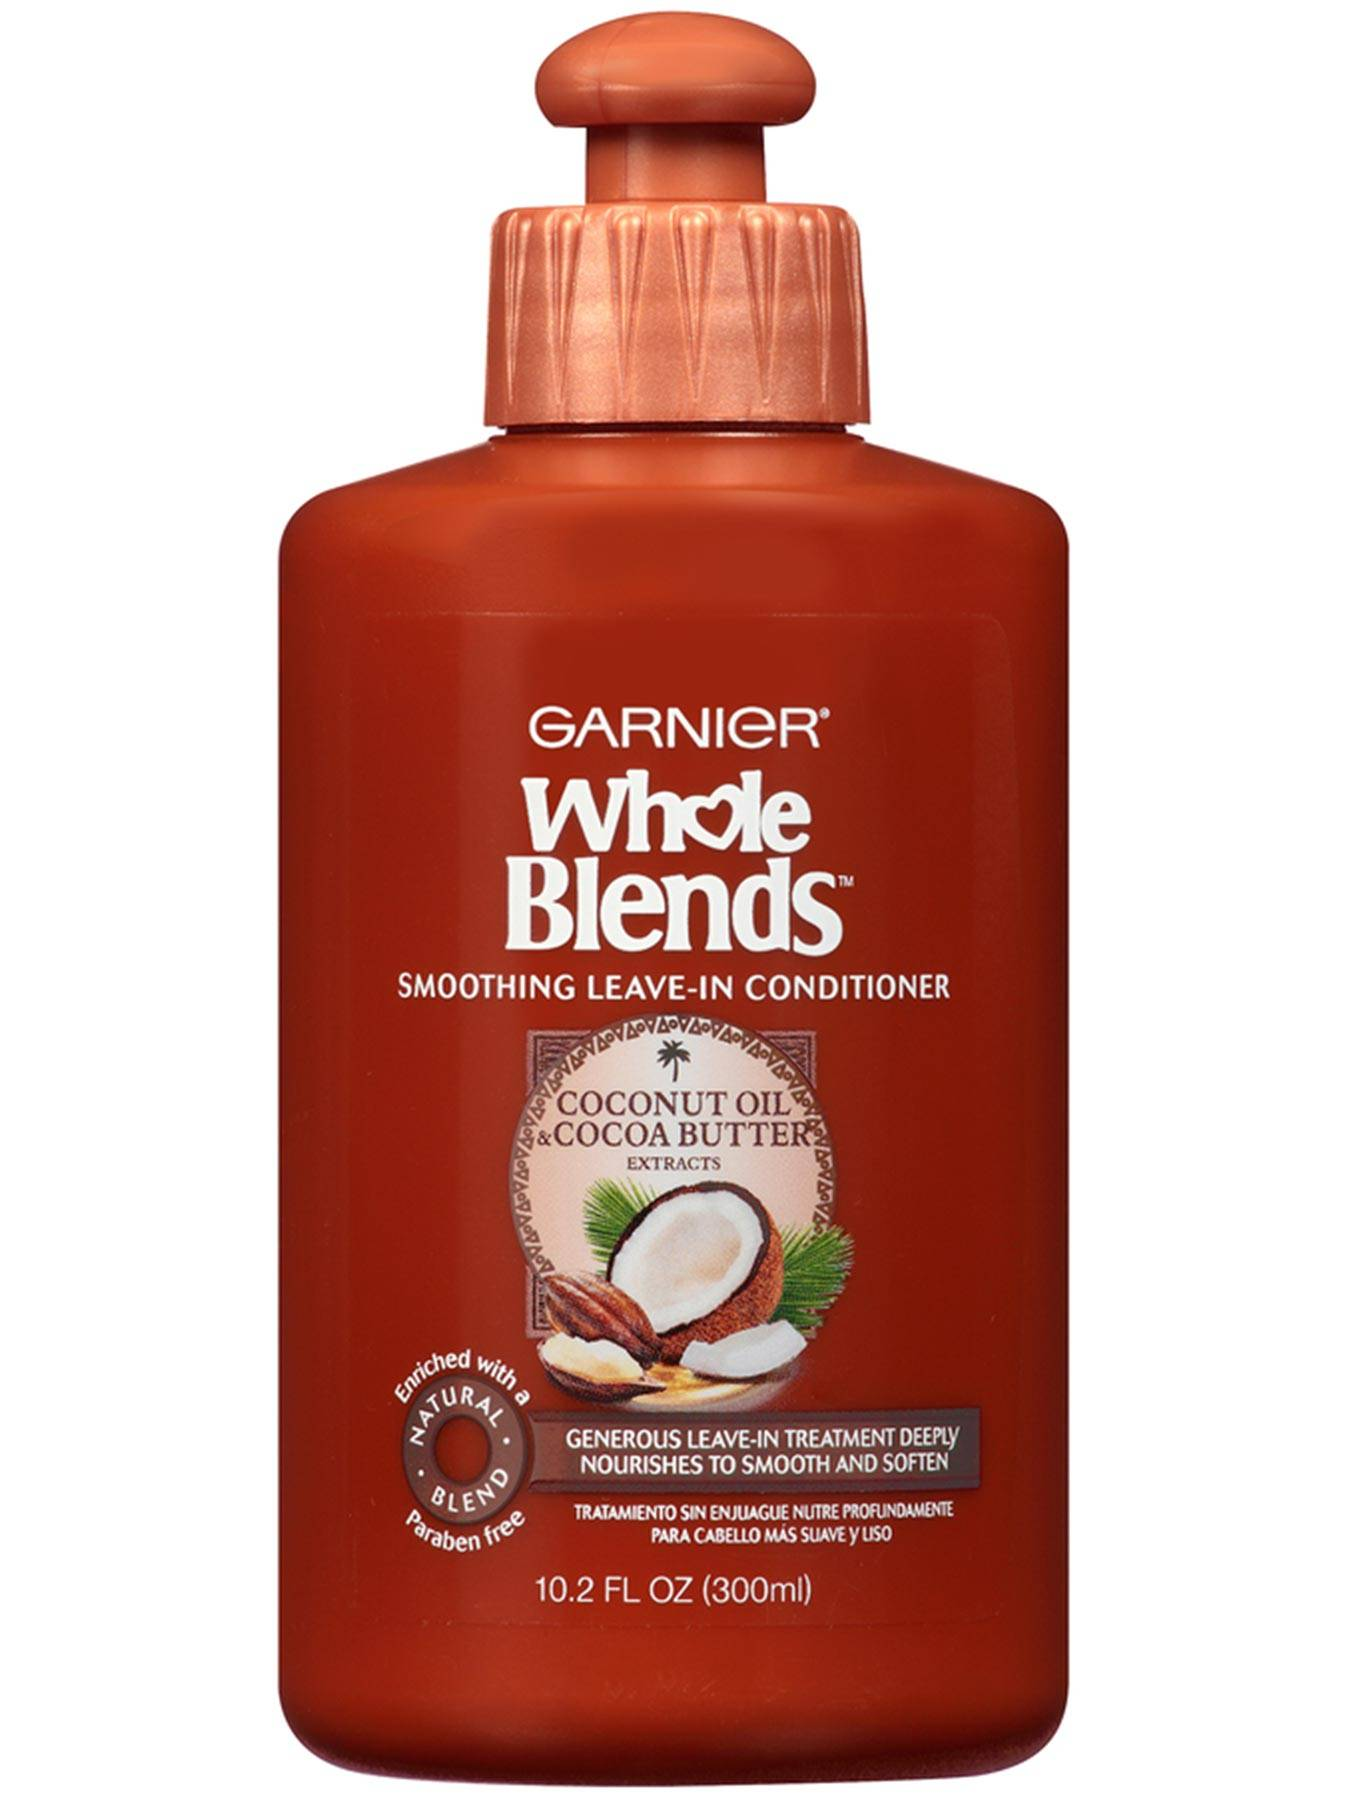 Smoothing Leave-In Conditioner with Coconut Oil & Cocoa Butter Extracts